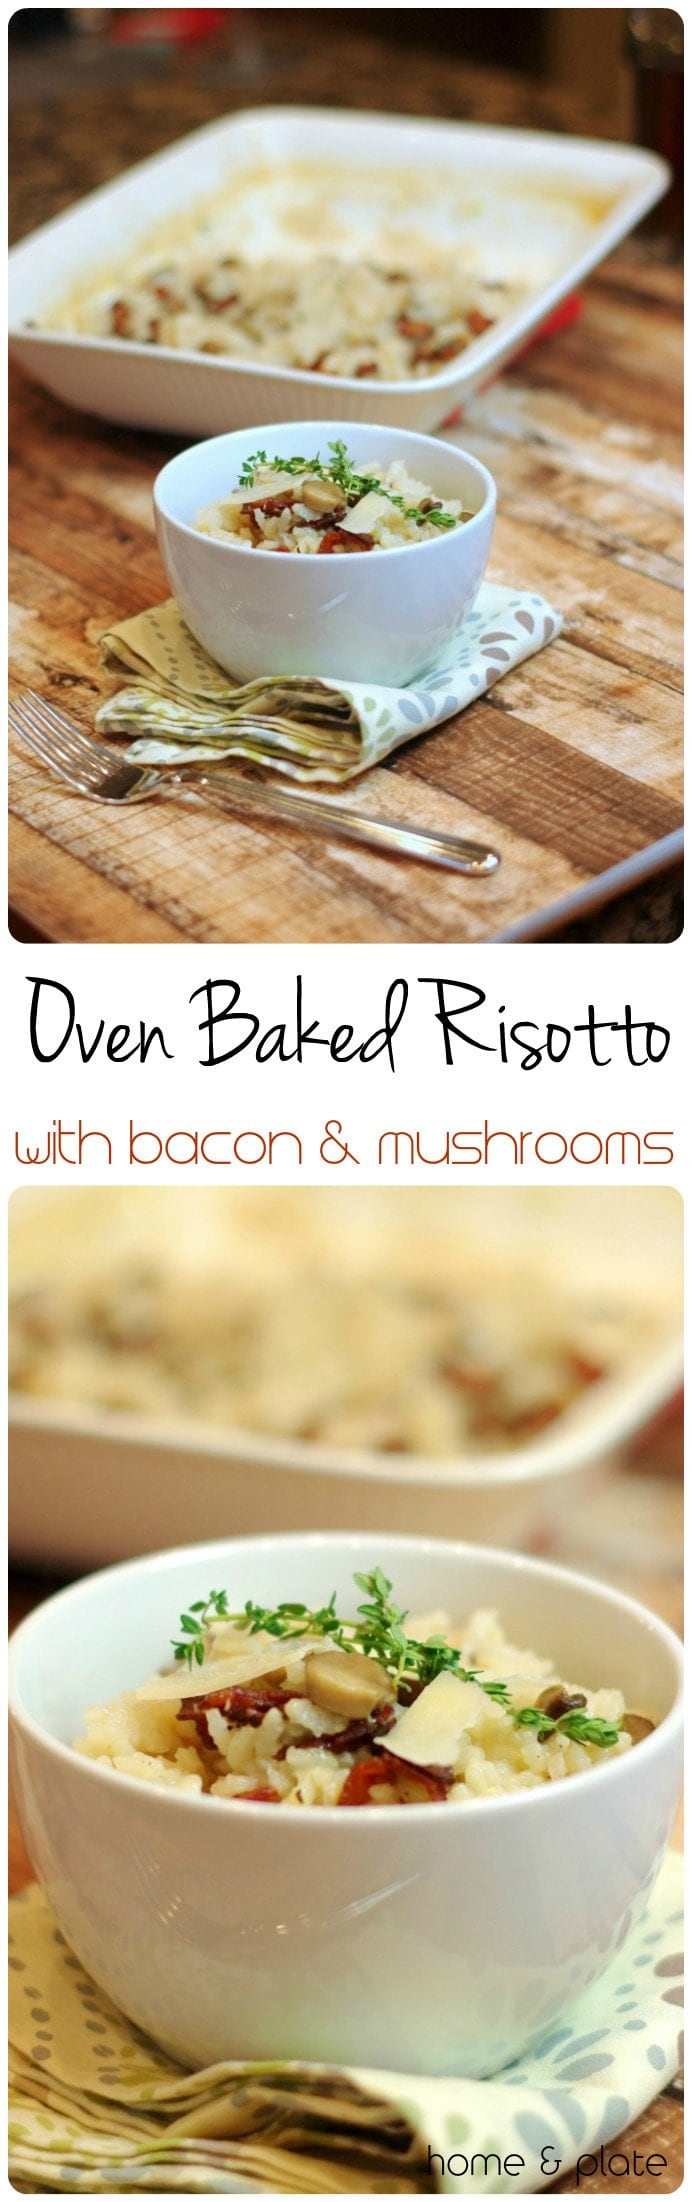 Oven Bakes Risotto with Bacon & Mushrooms | Home & Plate | www.homeandplate.com | Baked risotto eliminatesthe necessary stirringand the result is just as delicious.